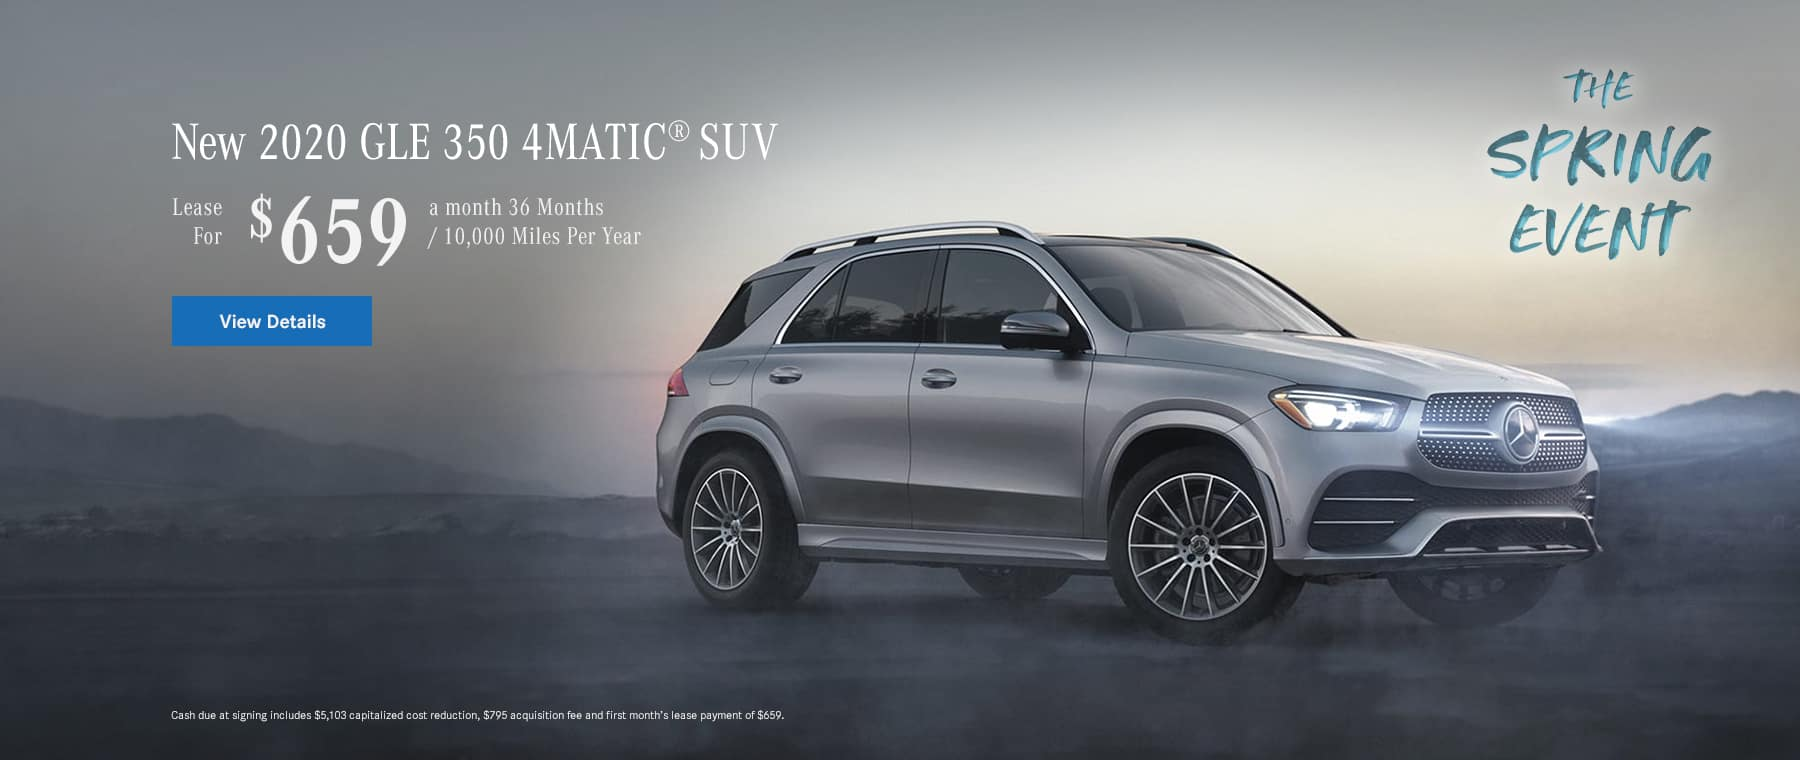 GLE 350 Lease offer